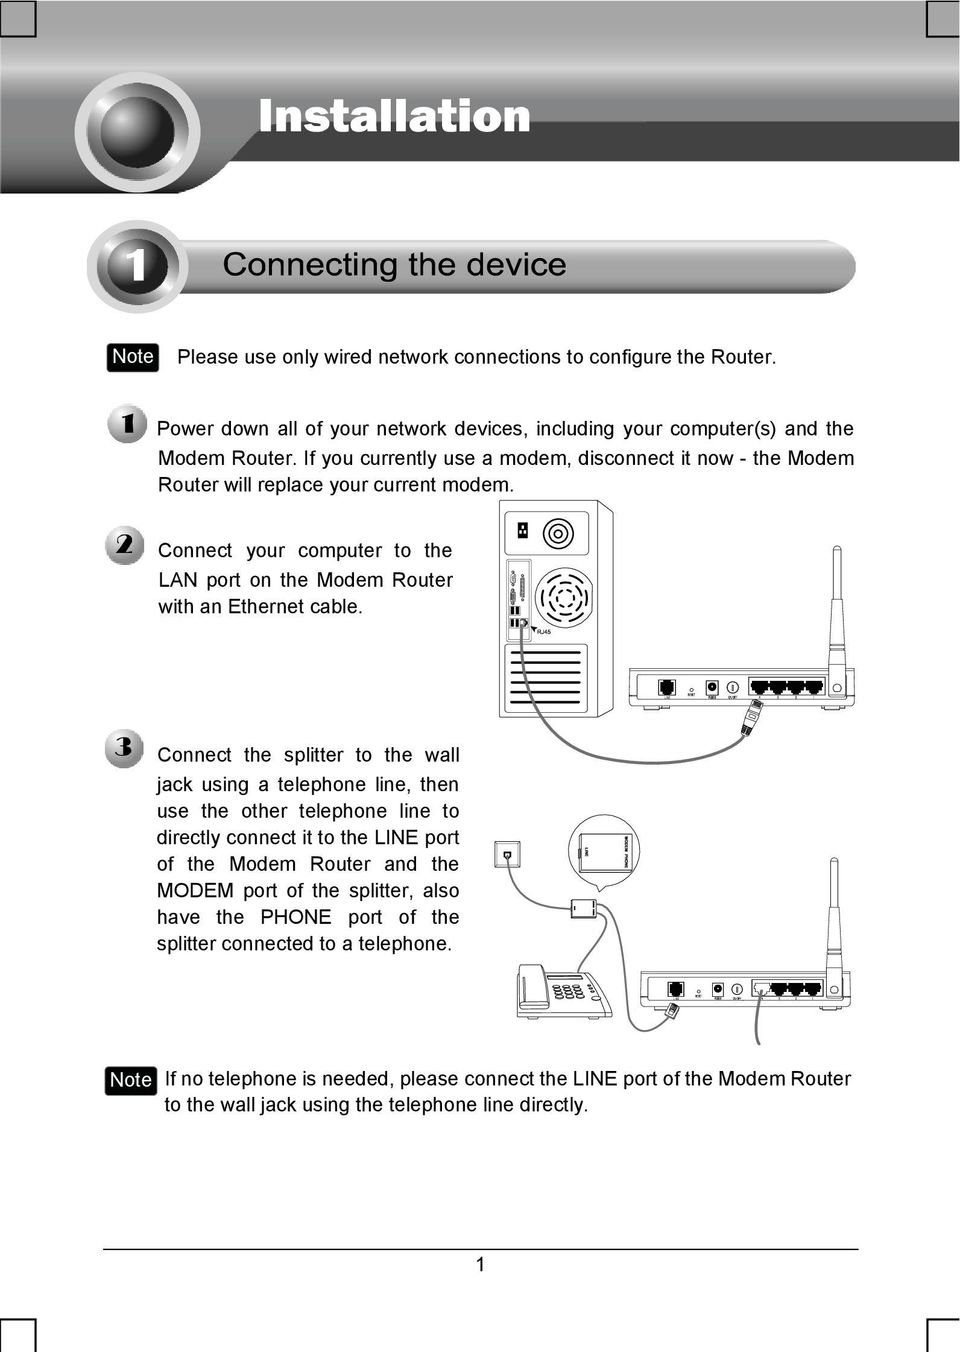 Connect the splitter to the wall jack using a telephone line, then use the other telephone line to directly connect it to the LINE port of the Modem Router and the MODEM port of the